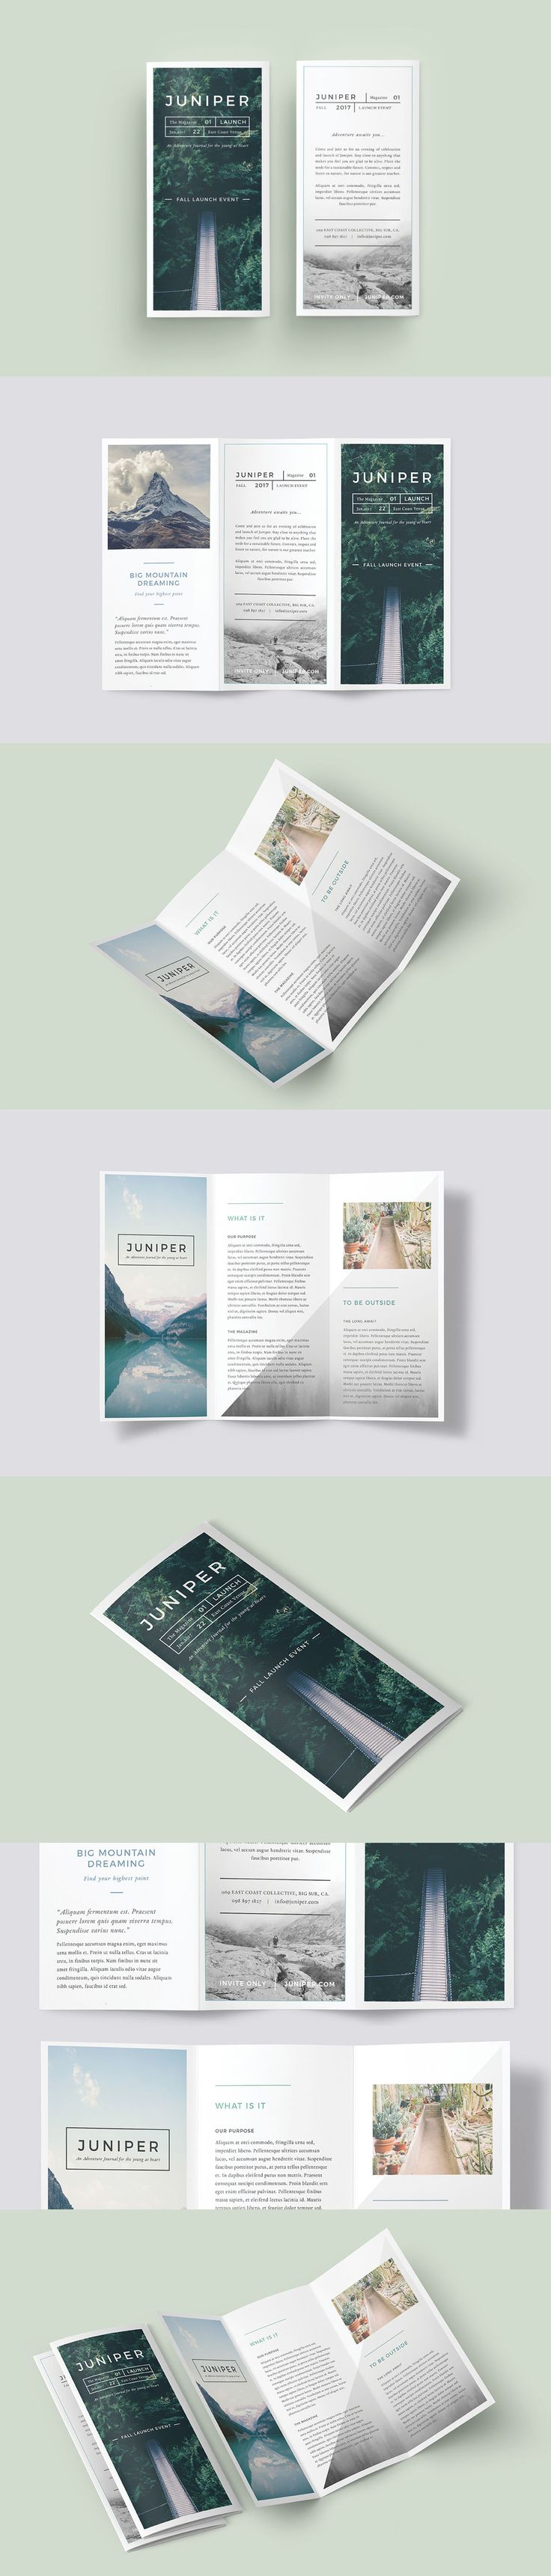 Wonderful 1 2 3 Nu Opgaver Kapitel Resume Small 1 Page Resume Templates Regular 1 Week Calendar Template 1.5 Button Template Old 10 Best Resume Templates Soft100 Chart Template 25  Best Ideas About Tri Fold Brochure On Pinterest | 3 Fold ..